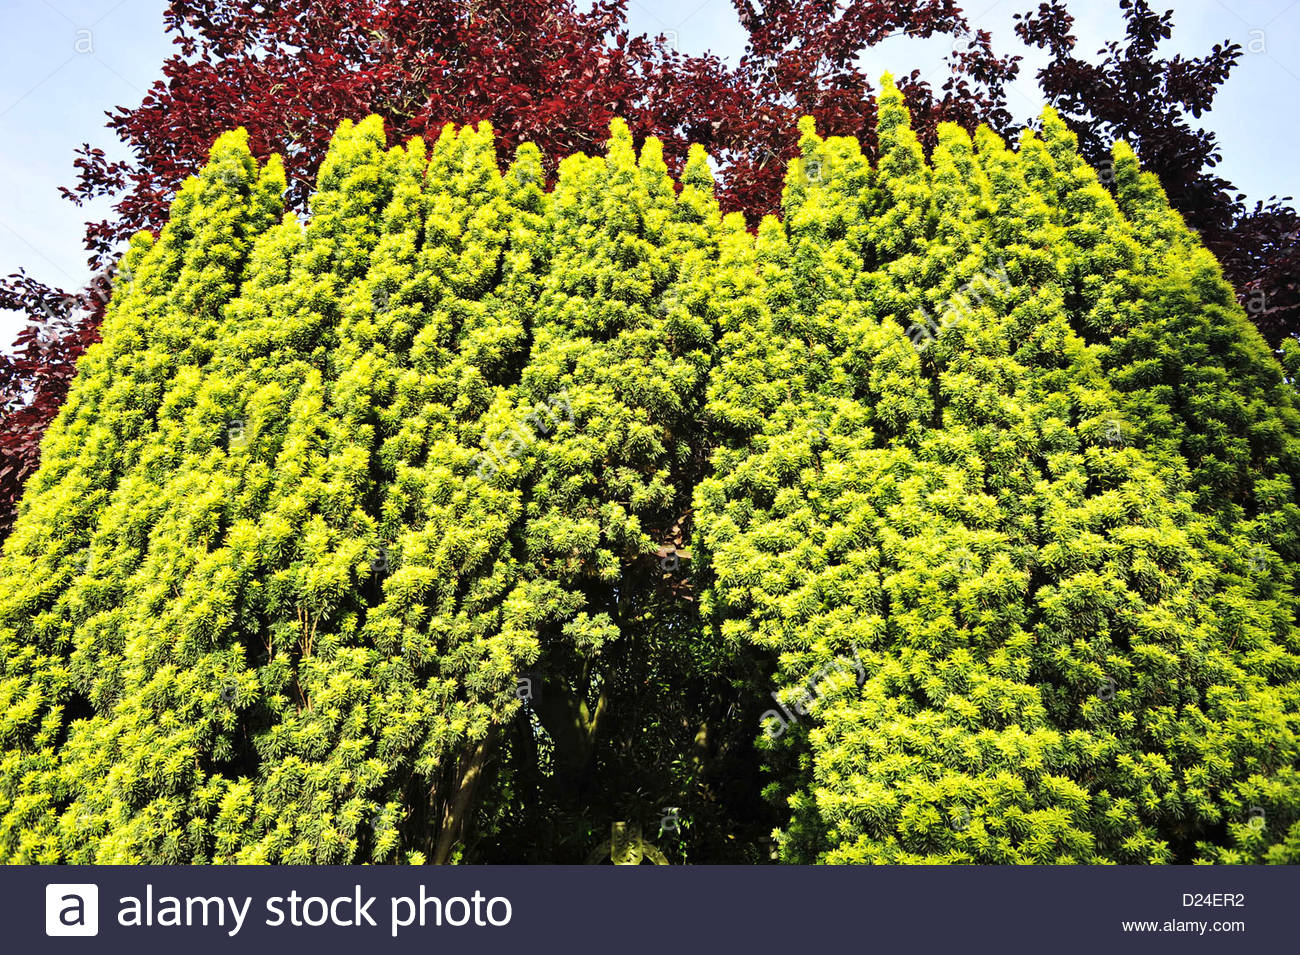 Ornamental yew tree and red beech - Stock Image